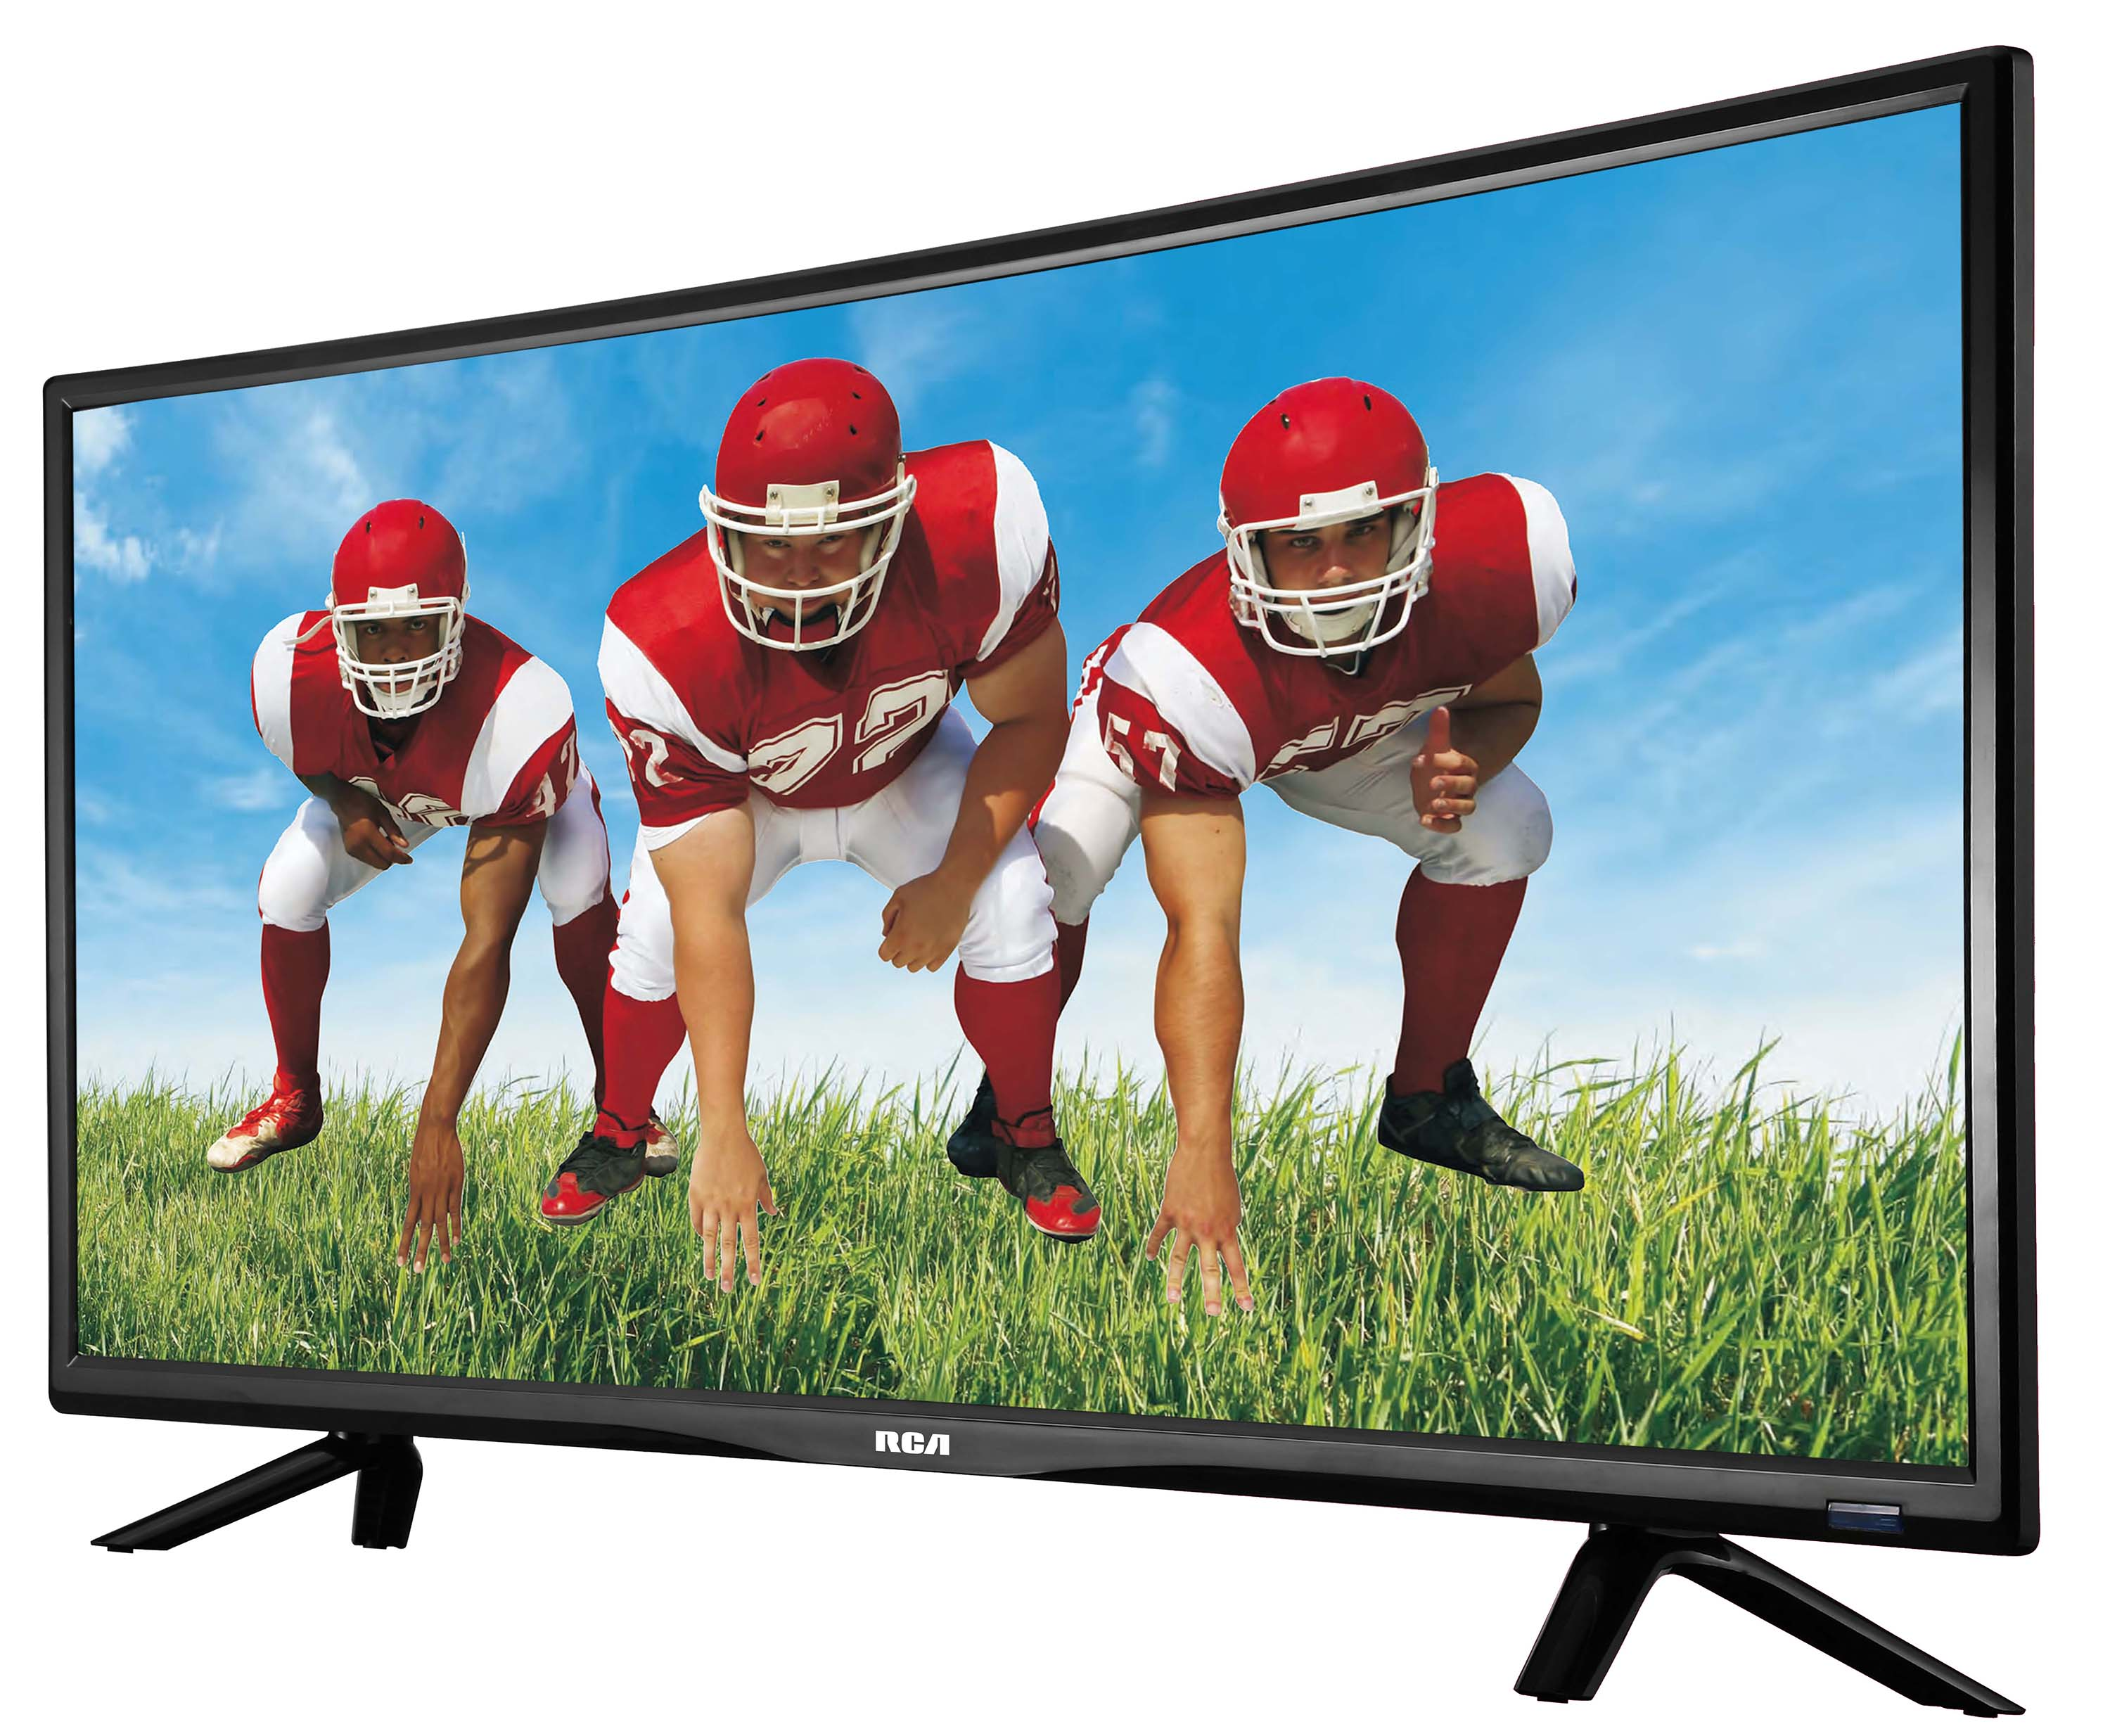 "RCA 32"" CURVED LED TV 720P by RCA"